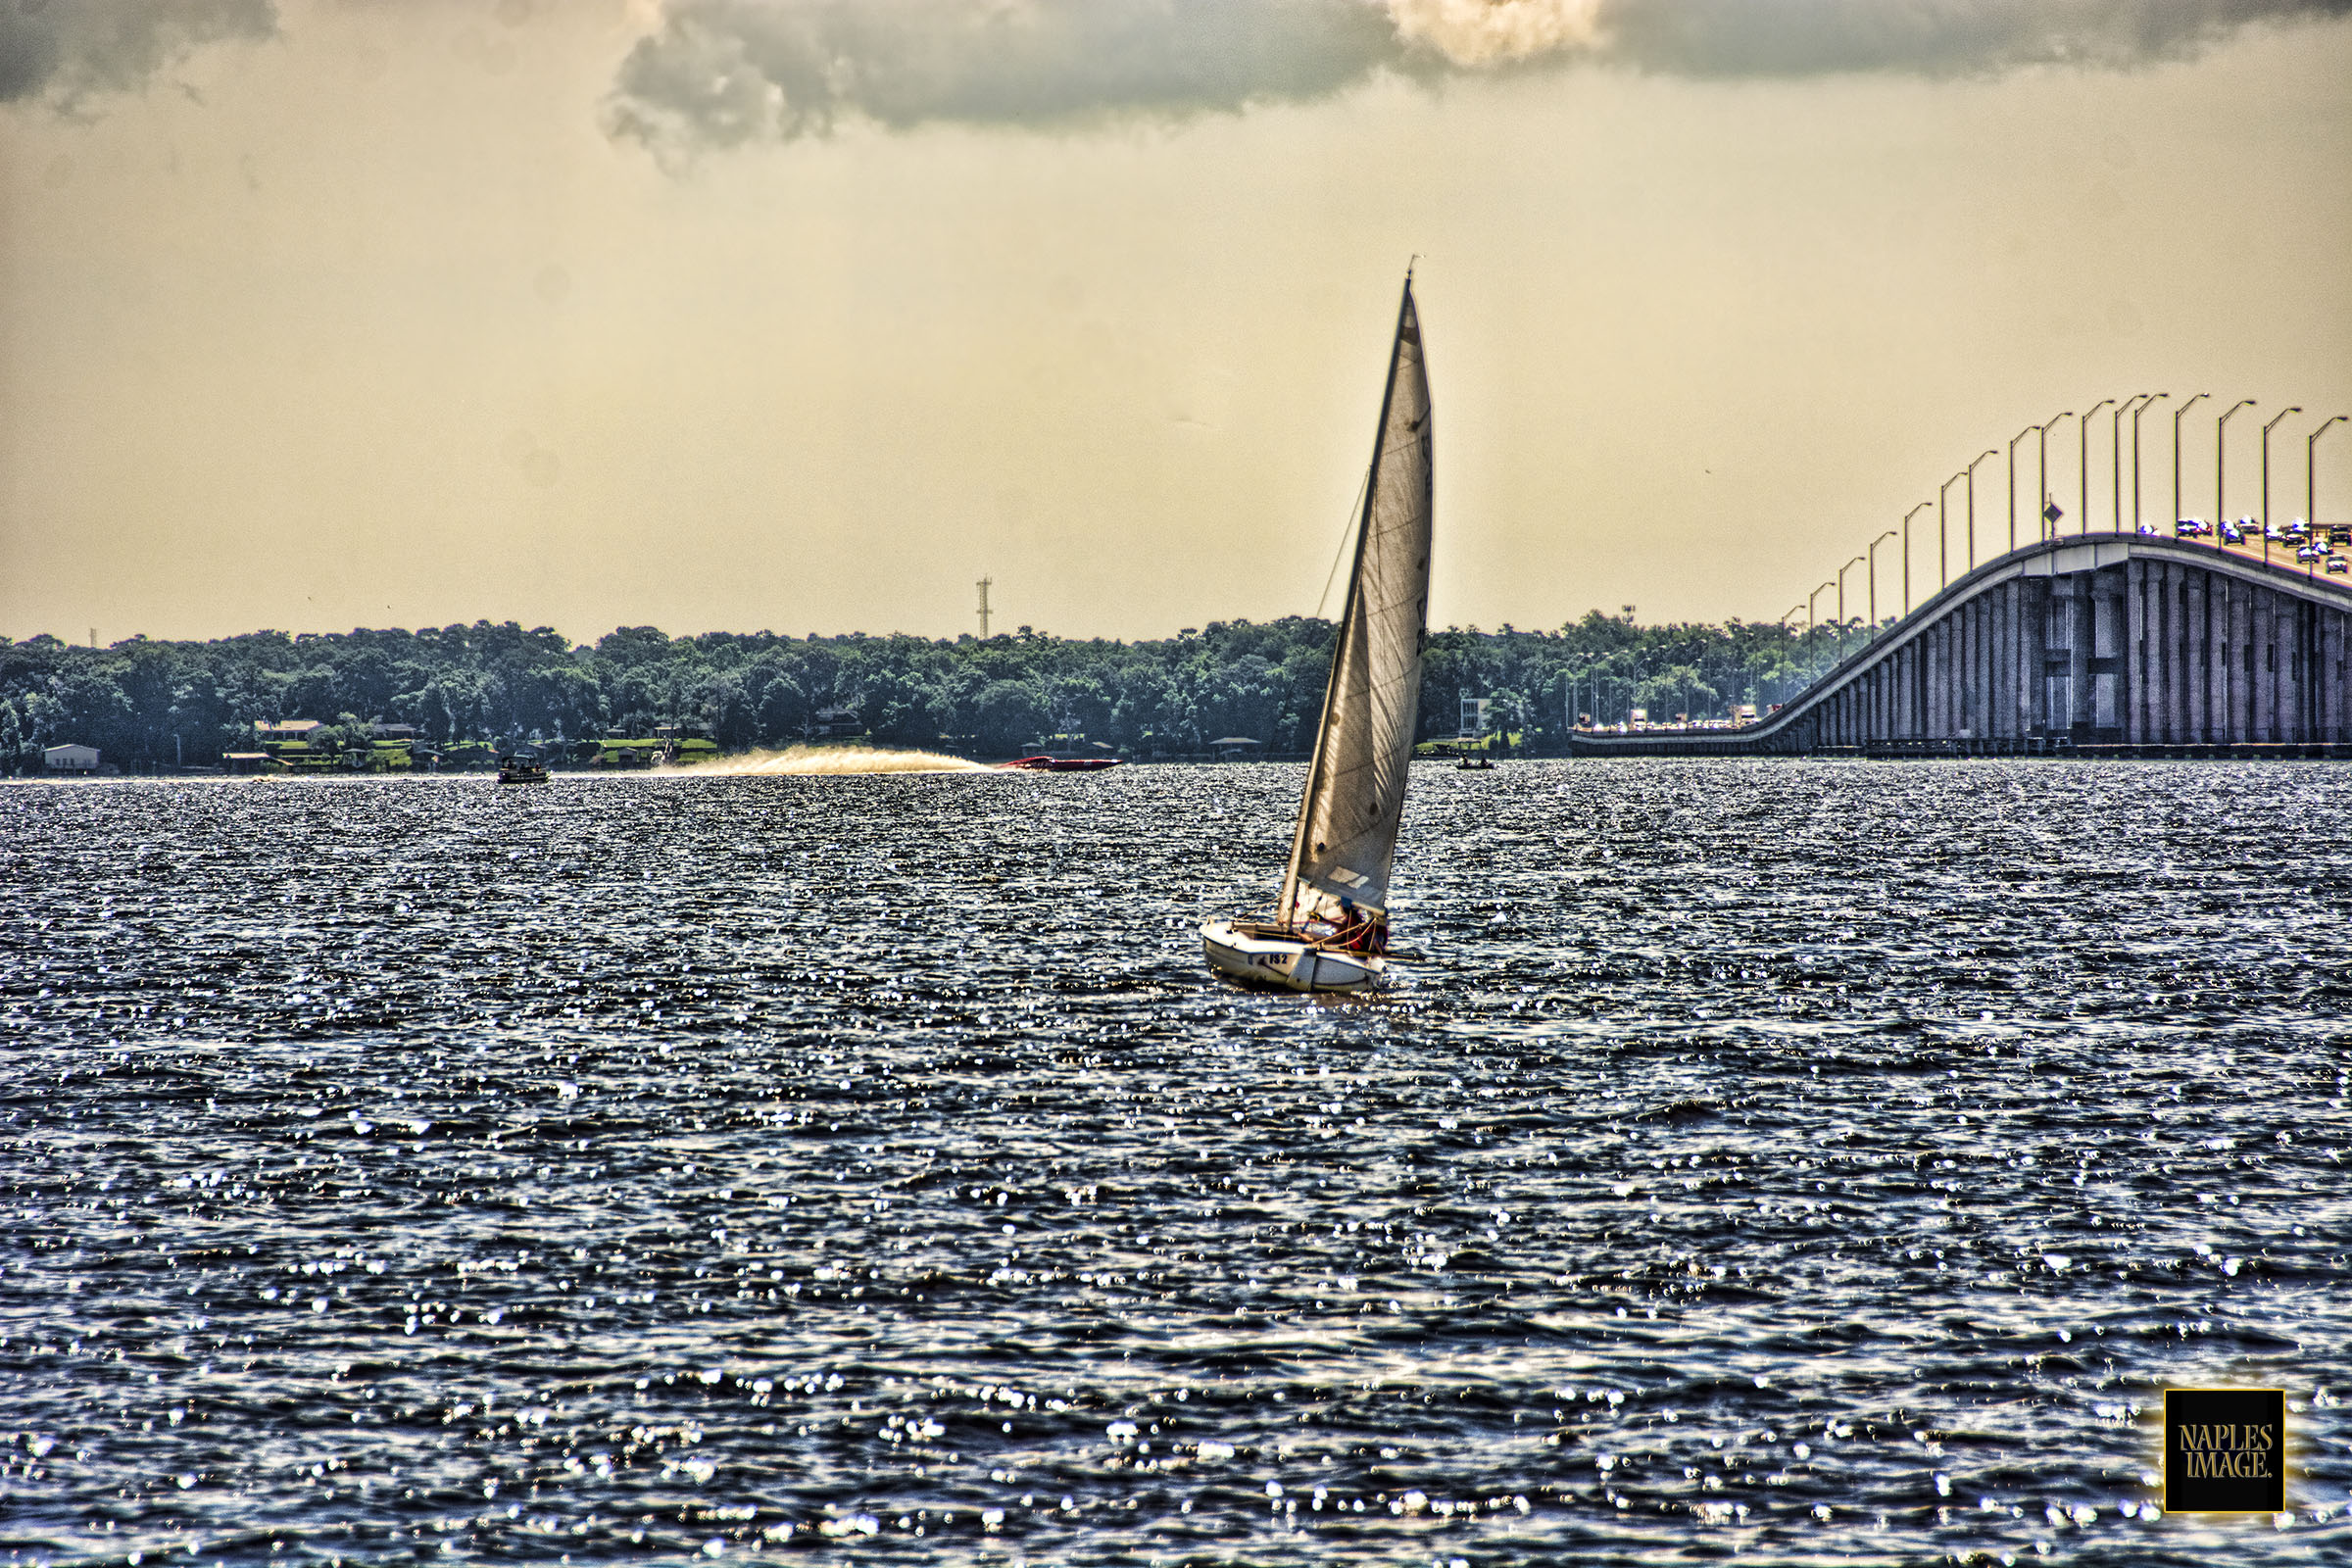 More than a poker run, the Jacksonville River Rally raises money for a most deserving charity. Photo by Jay Nichols/Naples Image (https://www.flickr.com/photos/jay2boat/sets/)